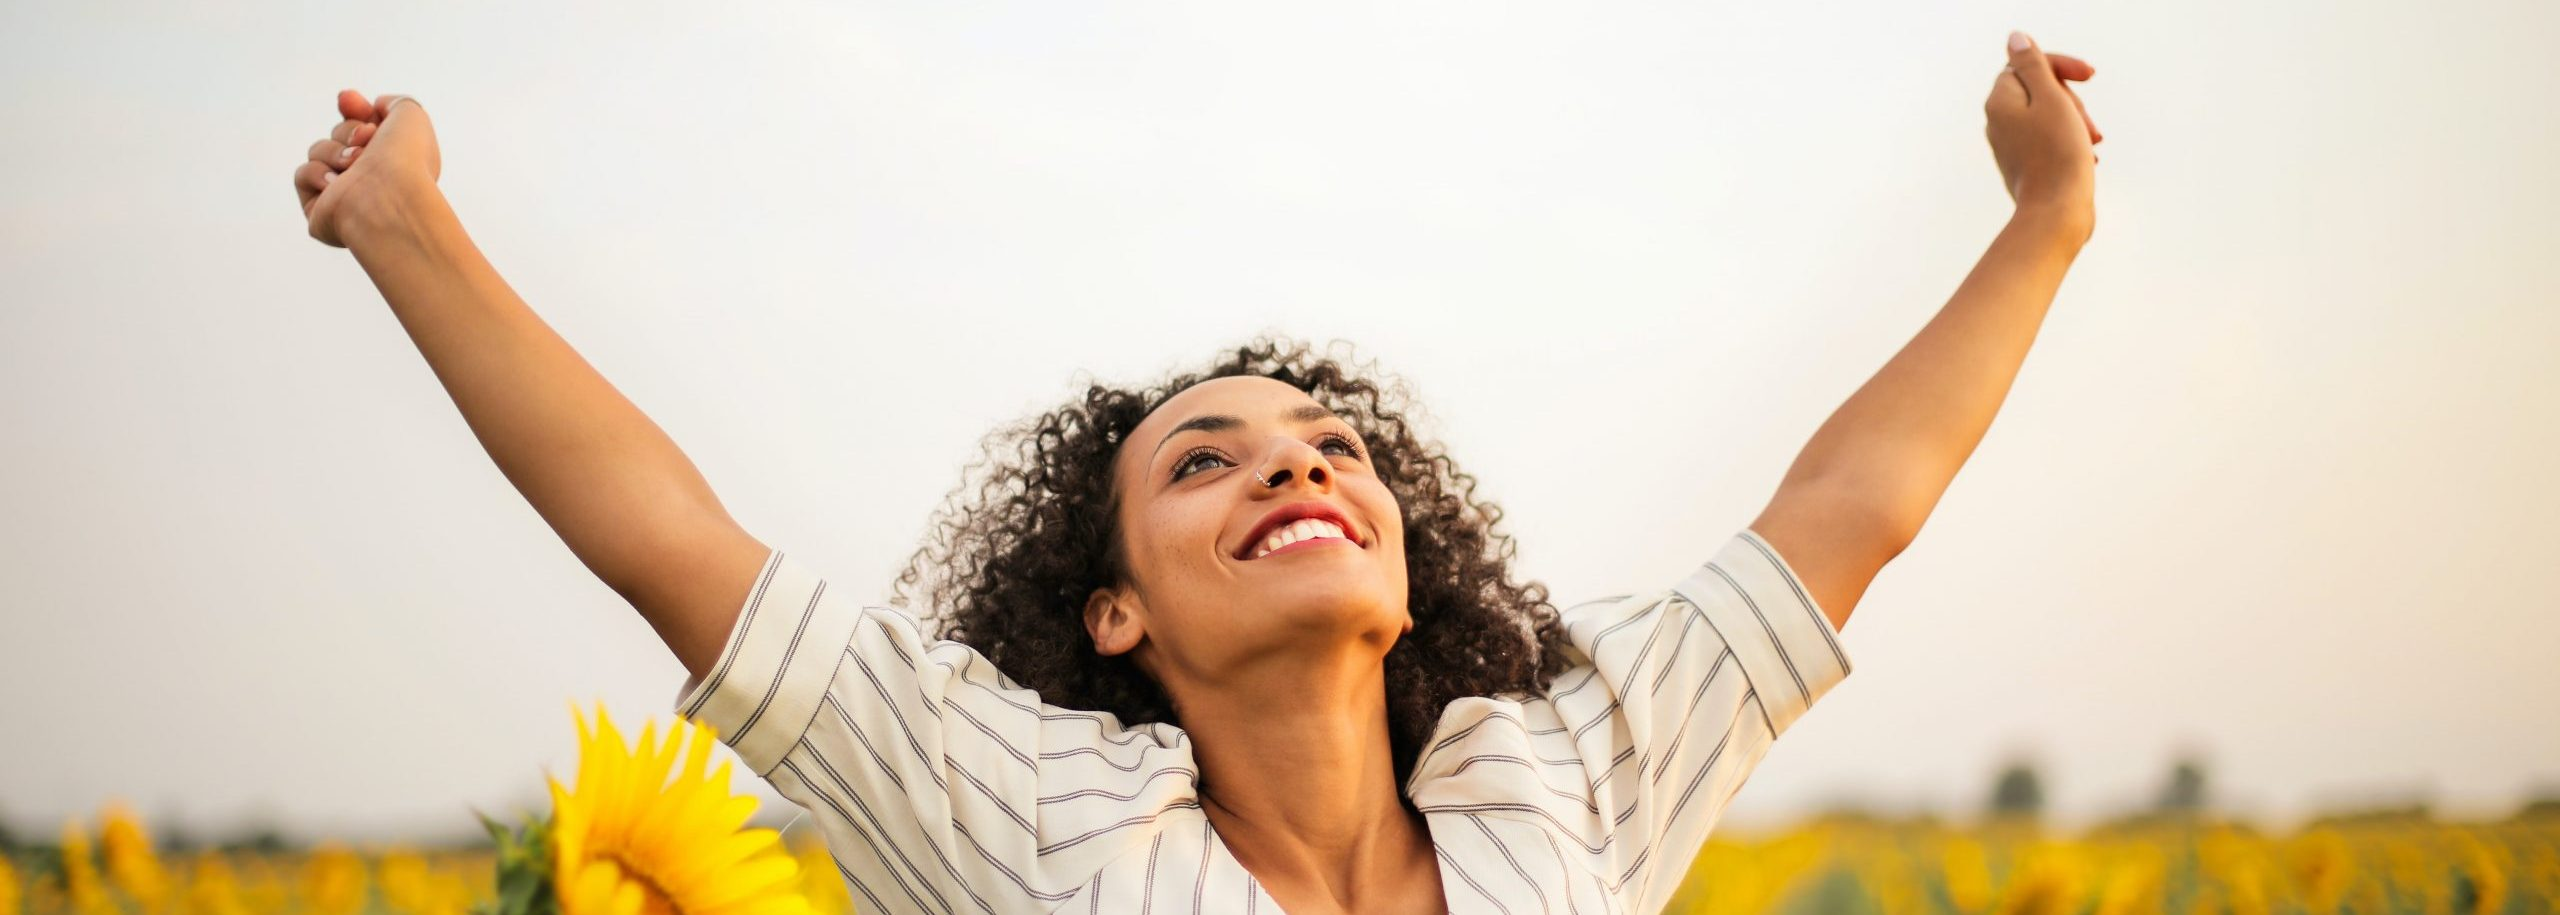 The Biggest Key to Earning Consumer Passion